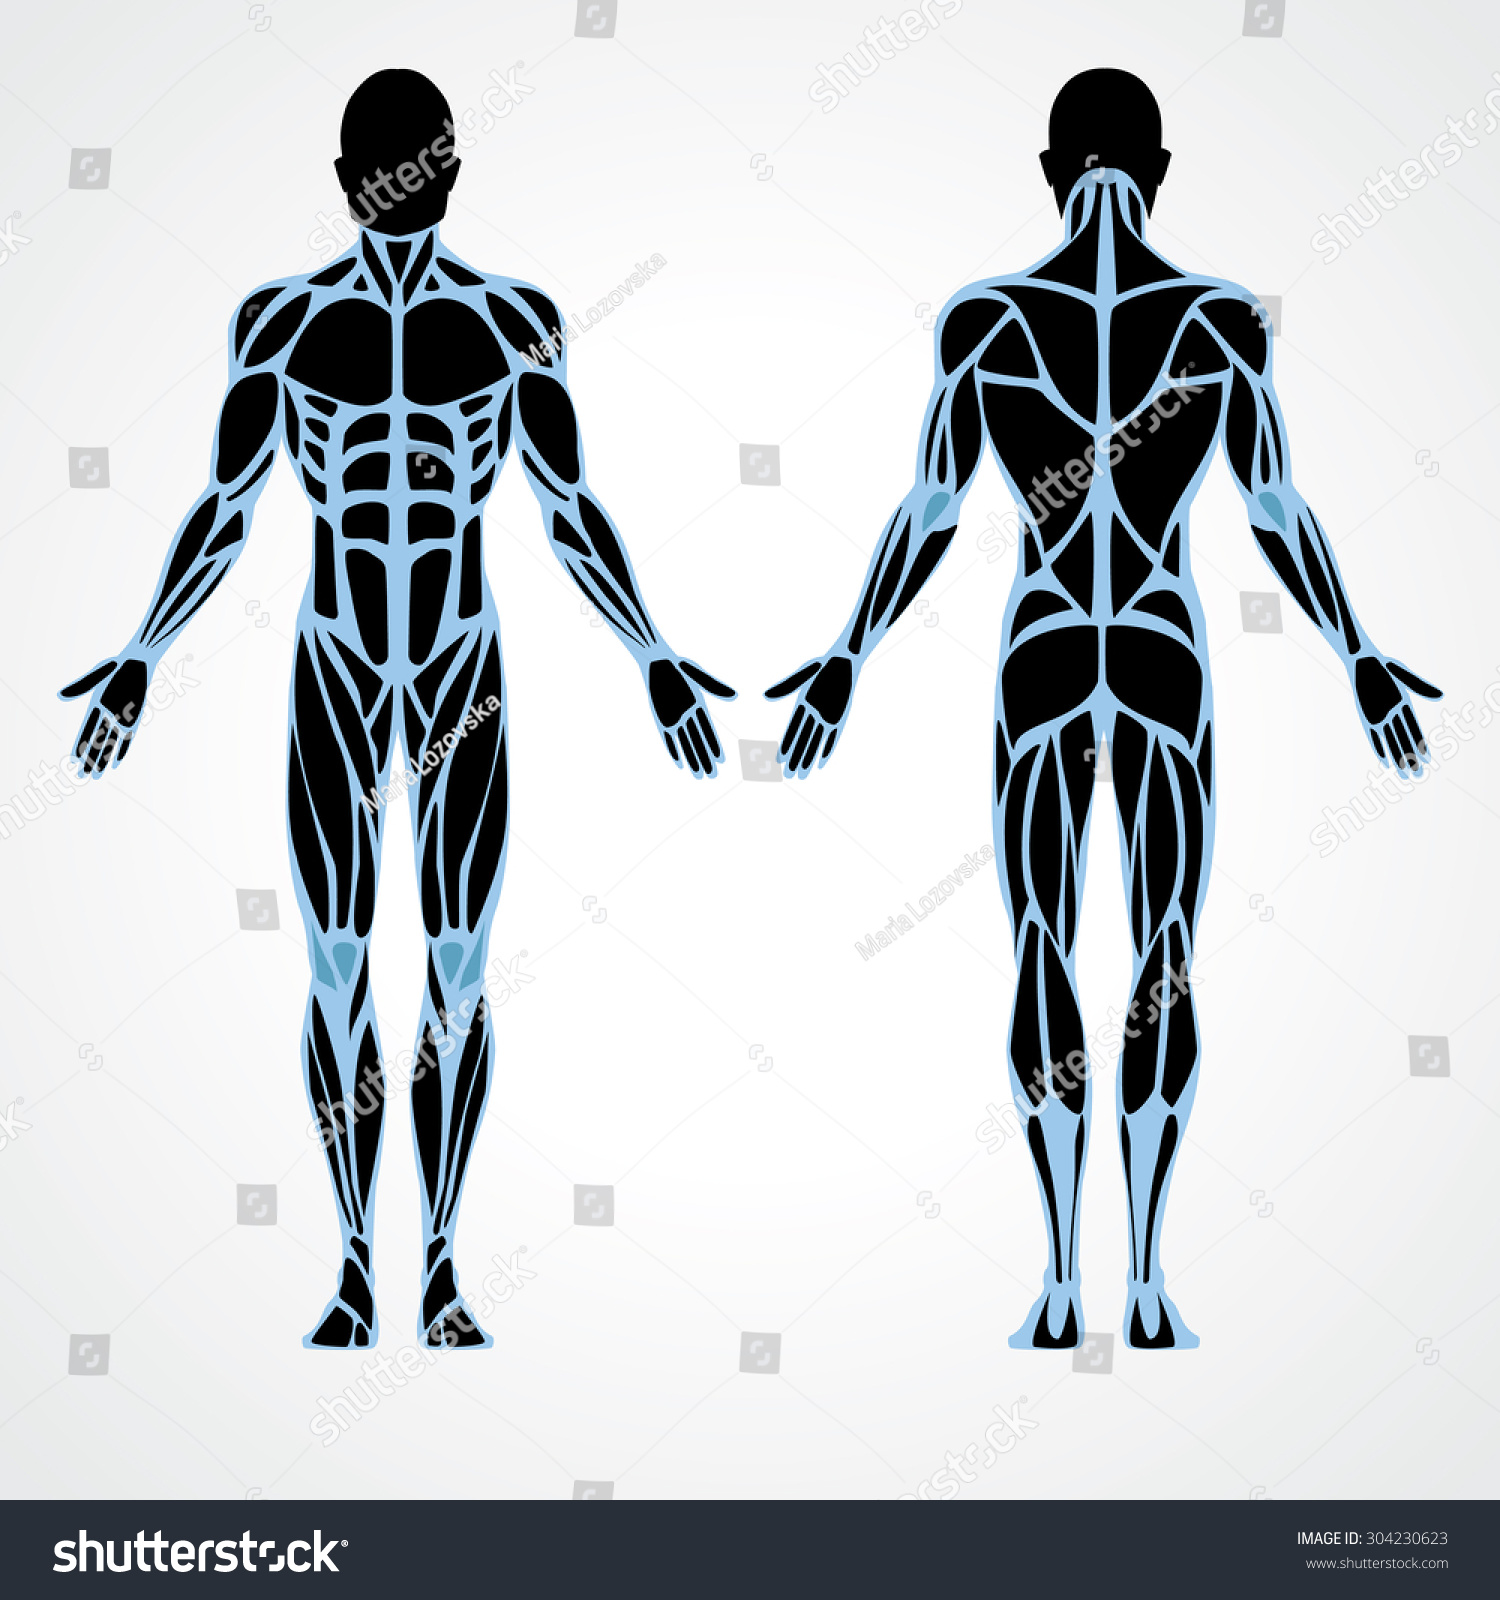 Royalty Free Male Muscular Anatomy Vector Scheme 304230623 Stock